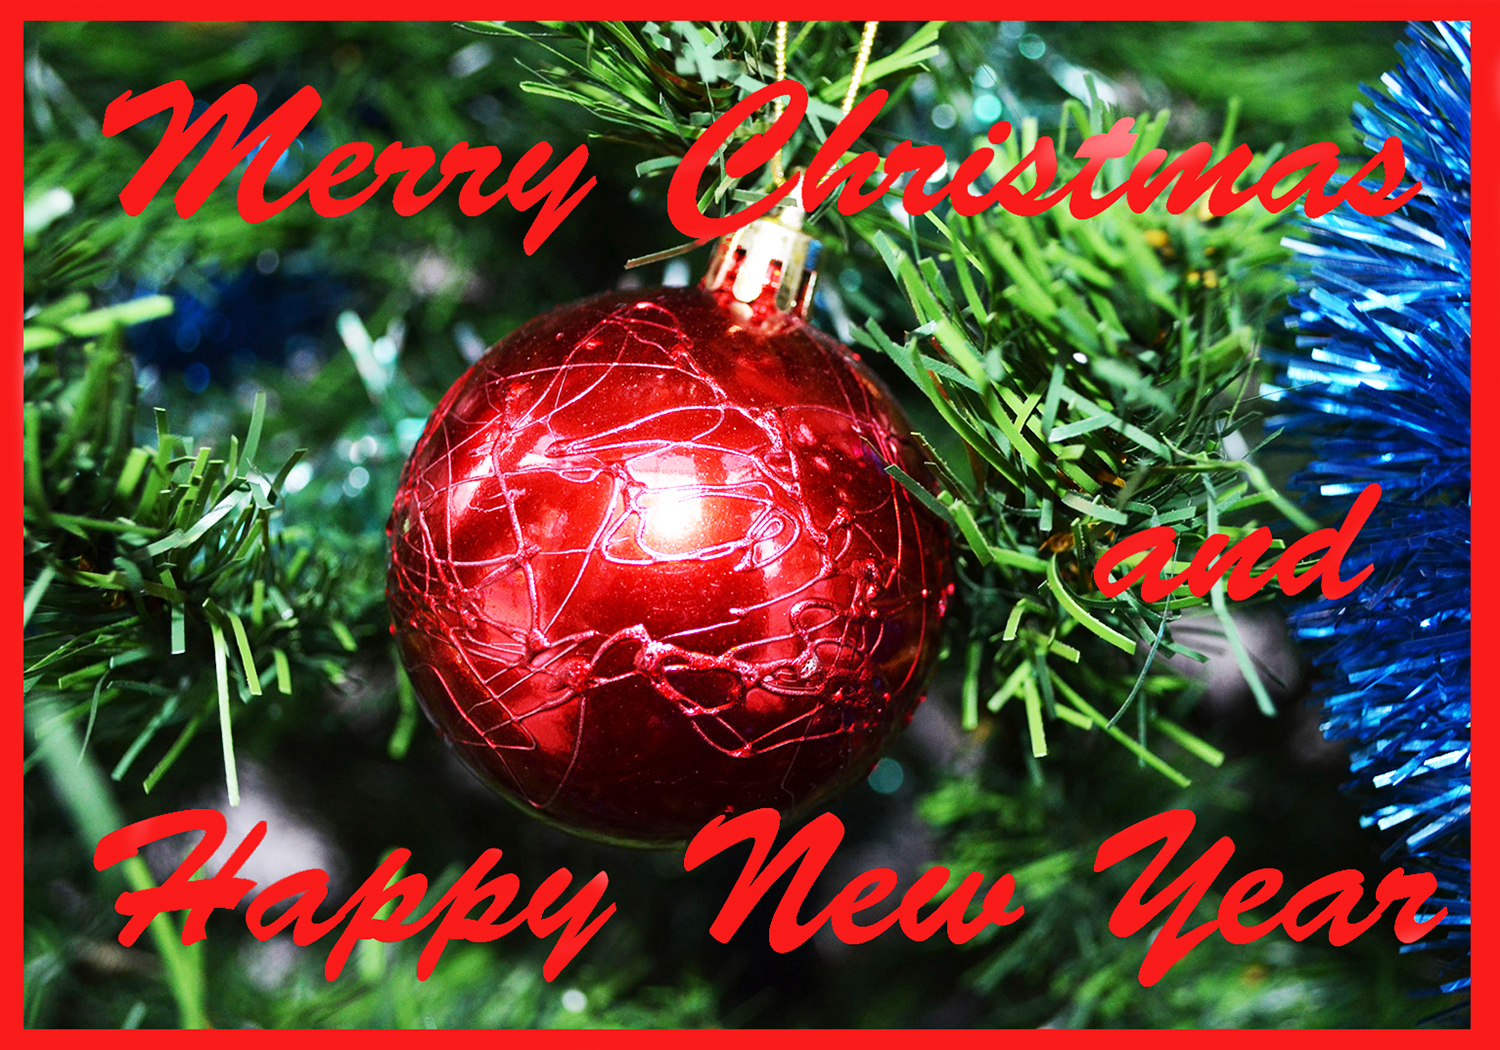 Merry christmas greetings images free gallery greeting card examples free printable christmas cards free printable greeting cards merry christmas happy new year kristyandbryce gallery kristyandbryce Choice Image